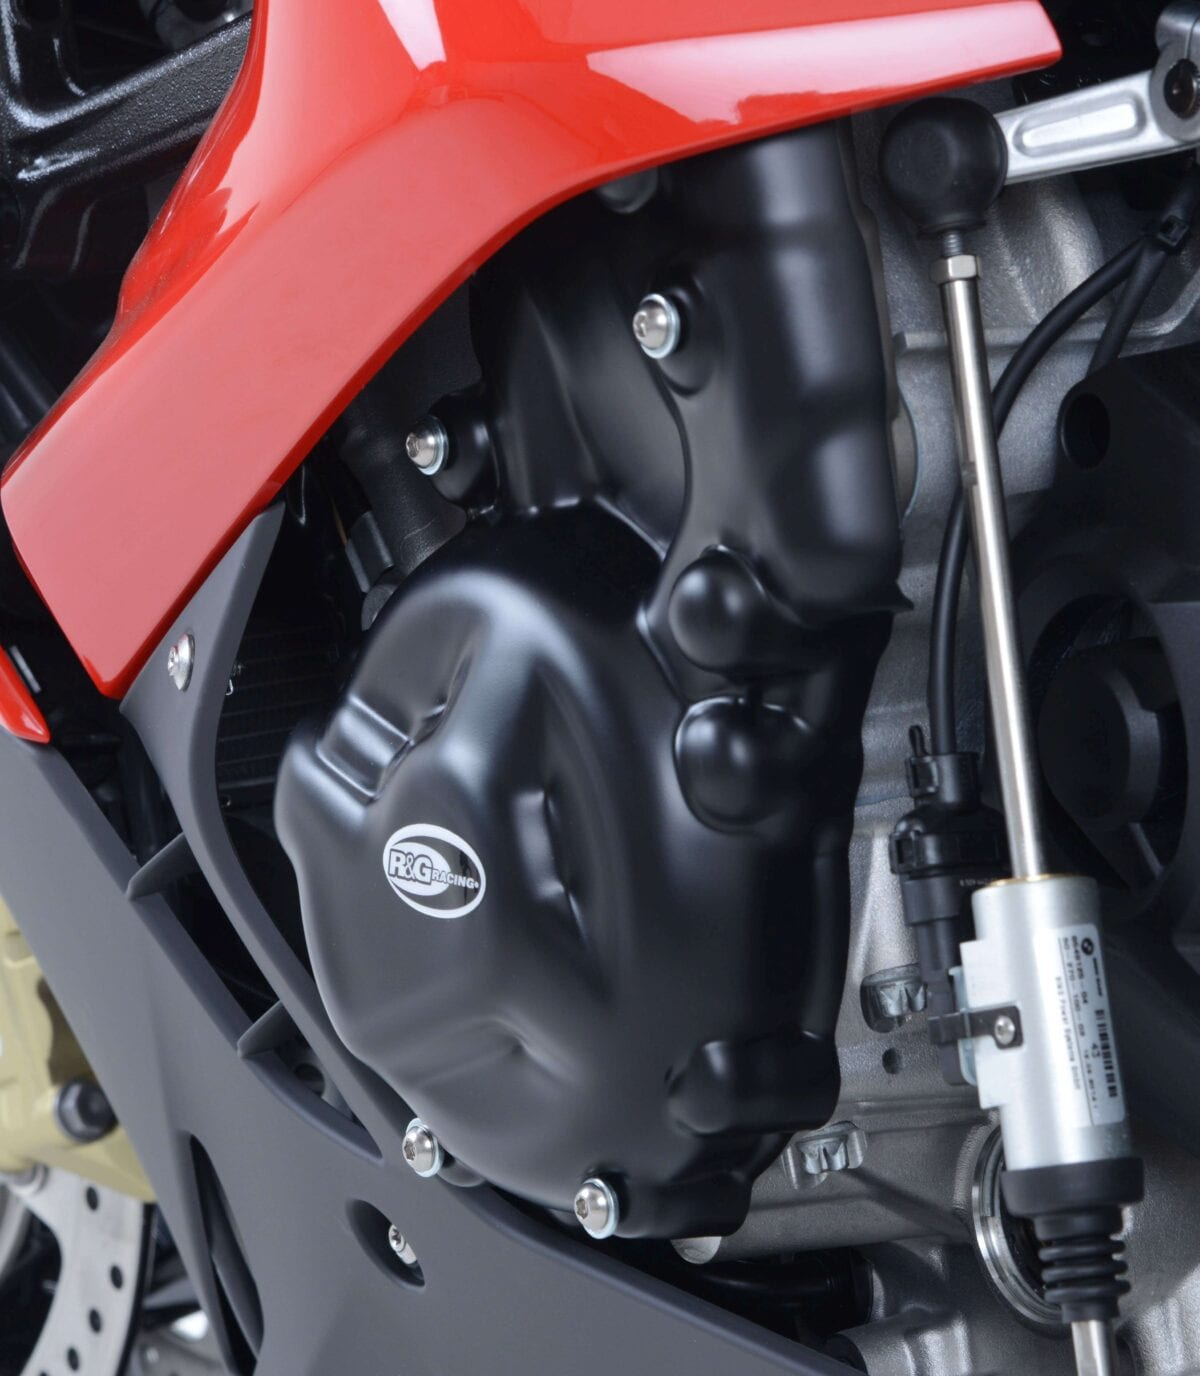 R&G-BMW-S1000RR-Engine-Case-Covers